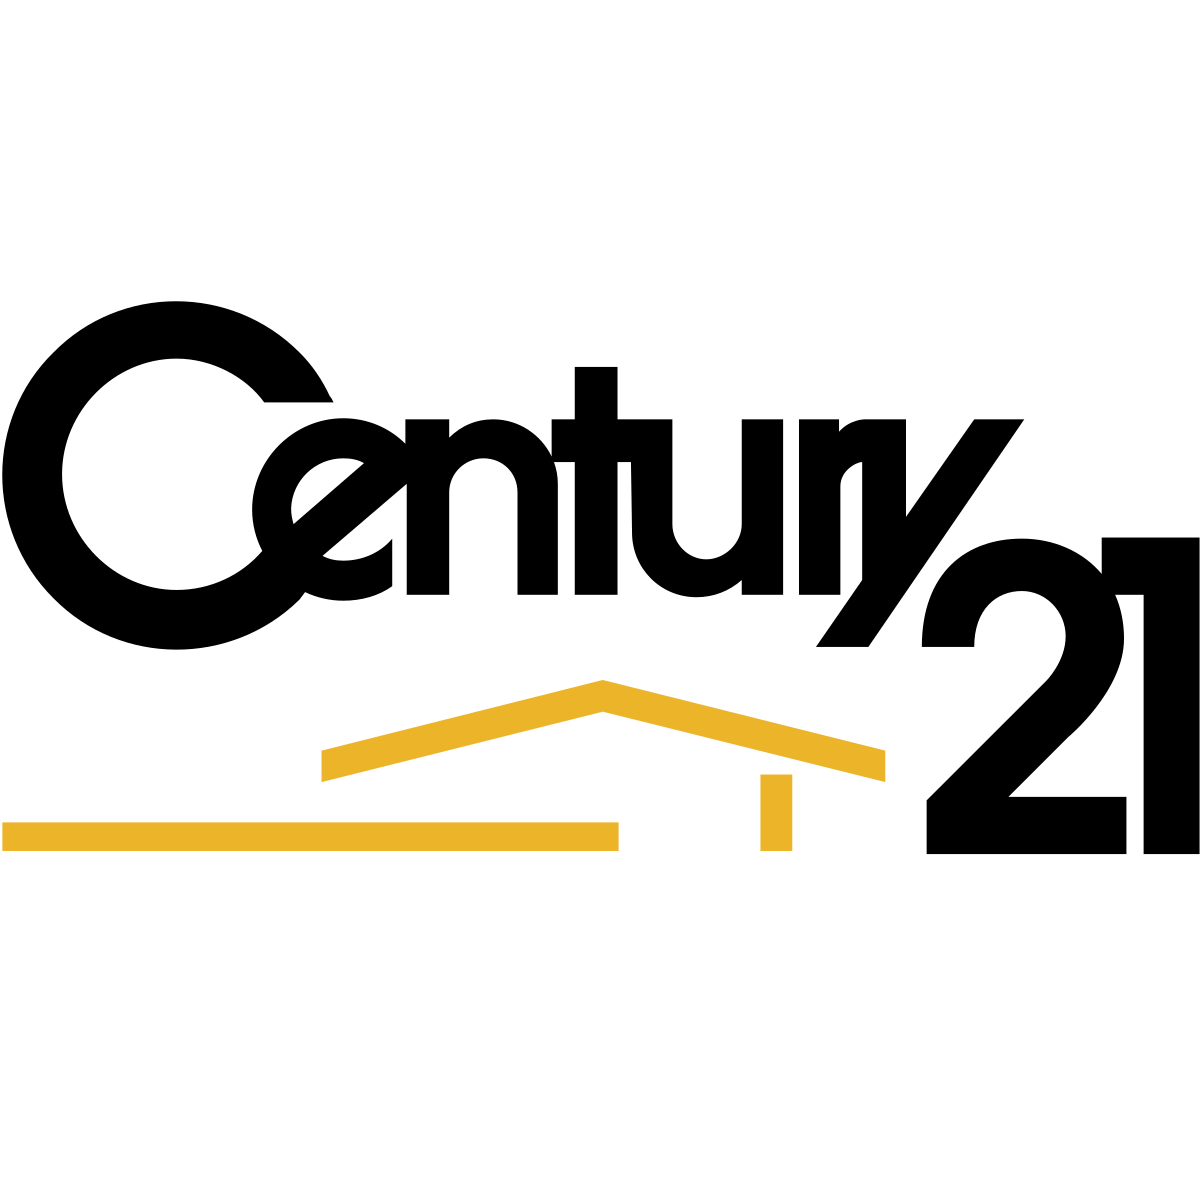 century21-logo Water & Flood Damage Restoration